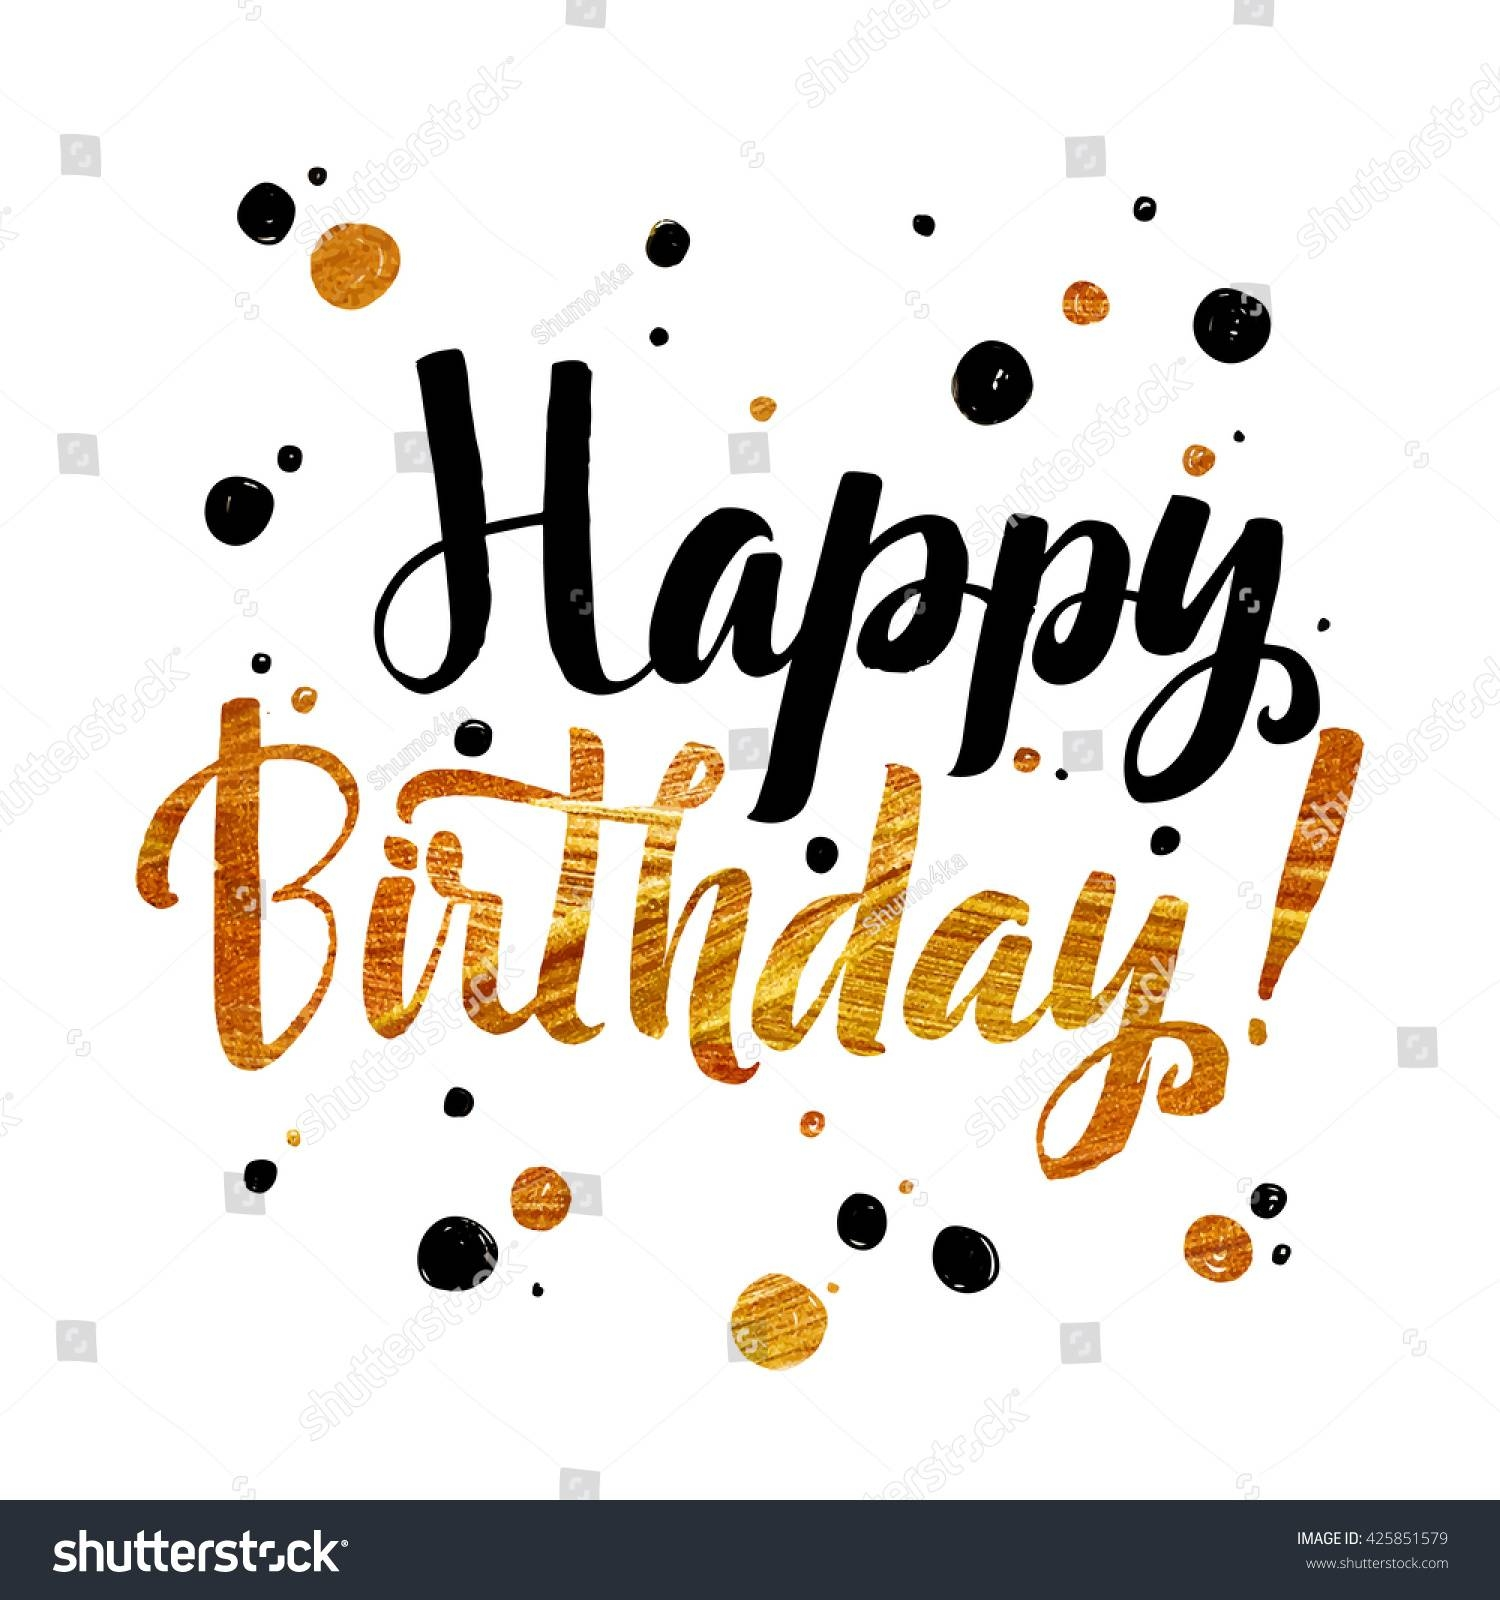 Happy Birthday Gold Foil Calligraphic Message Stock Vector Pertaining To Most Popular Happy Birthday Wall Art (View 9 of 20)